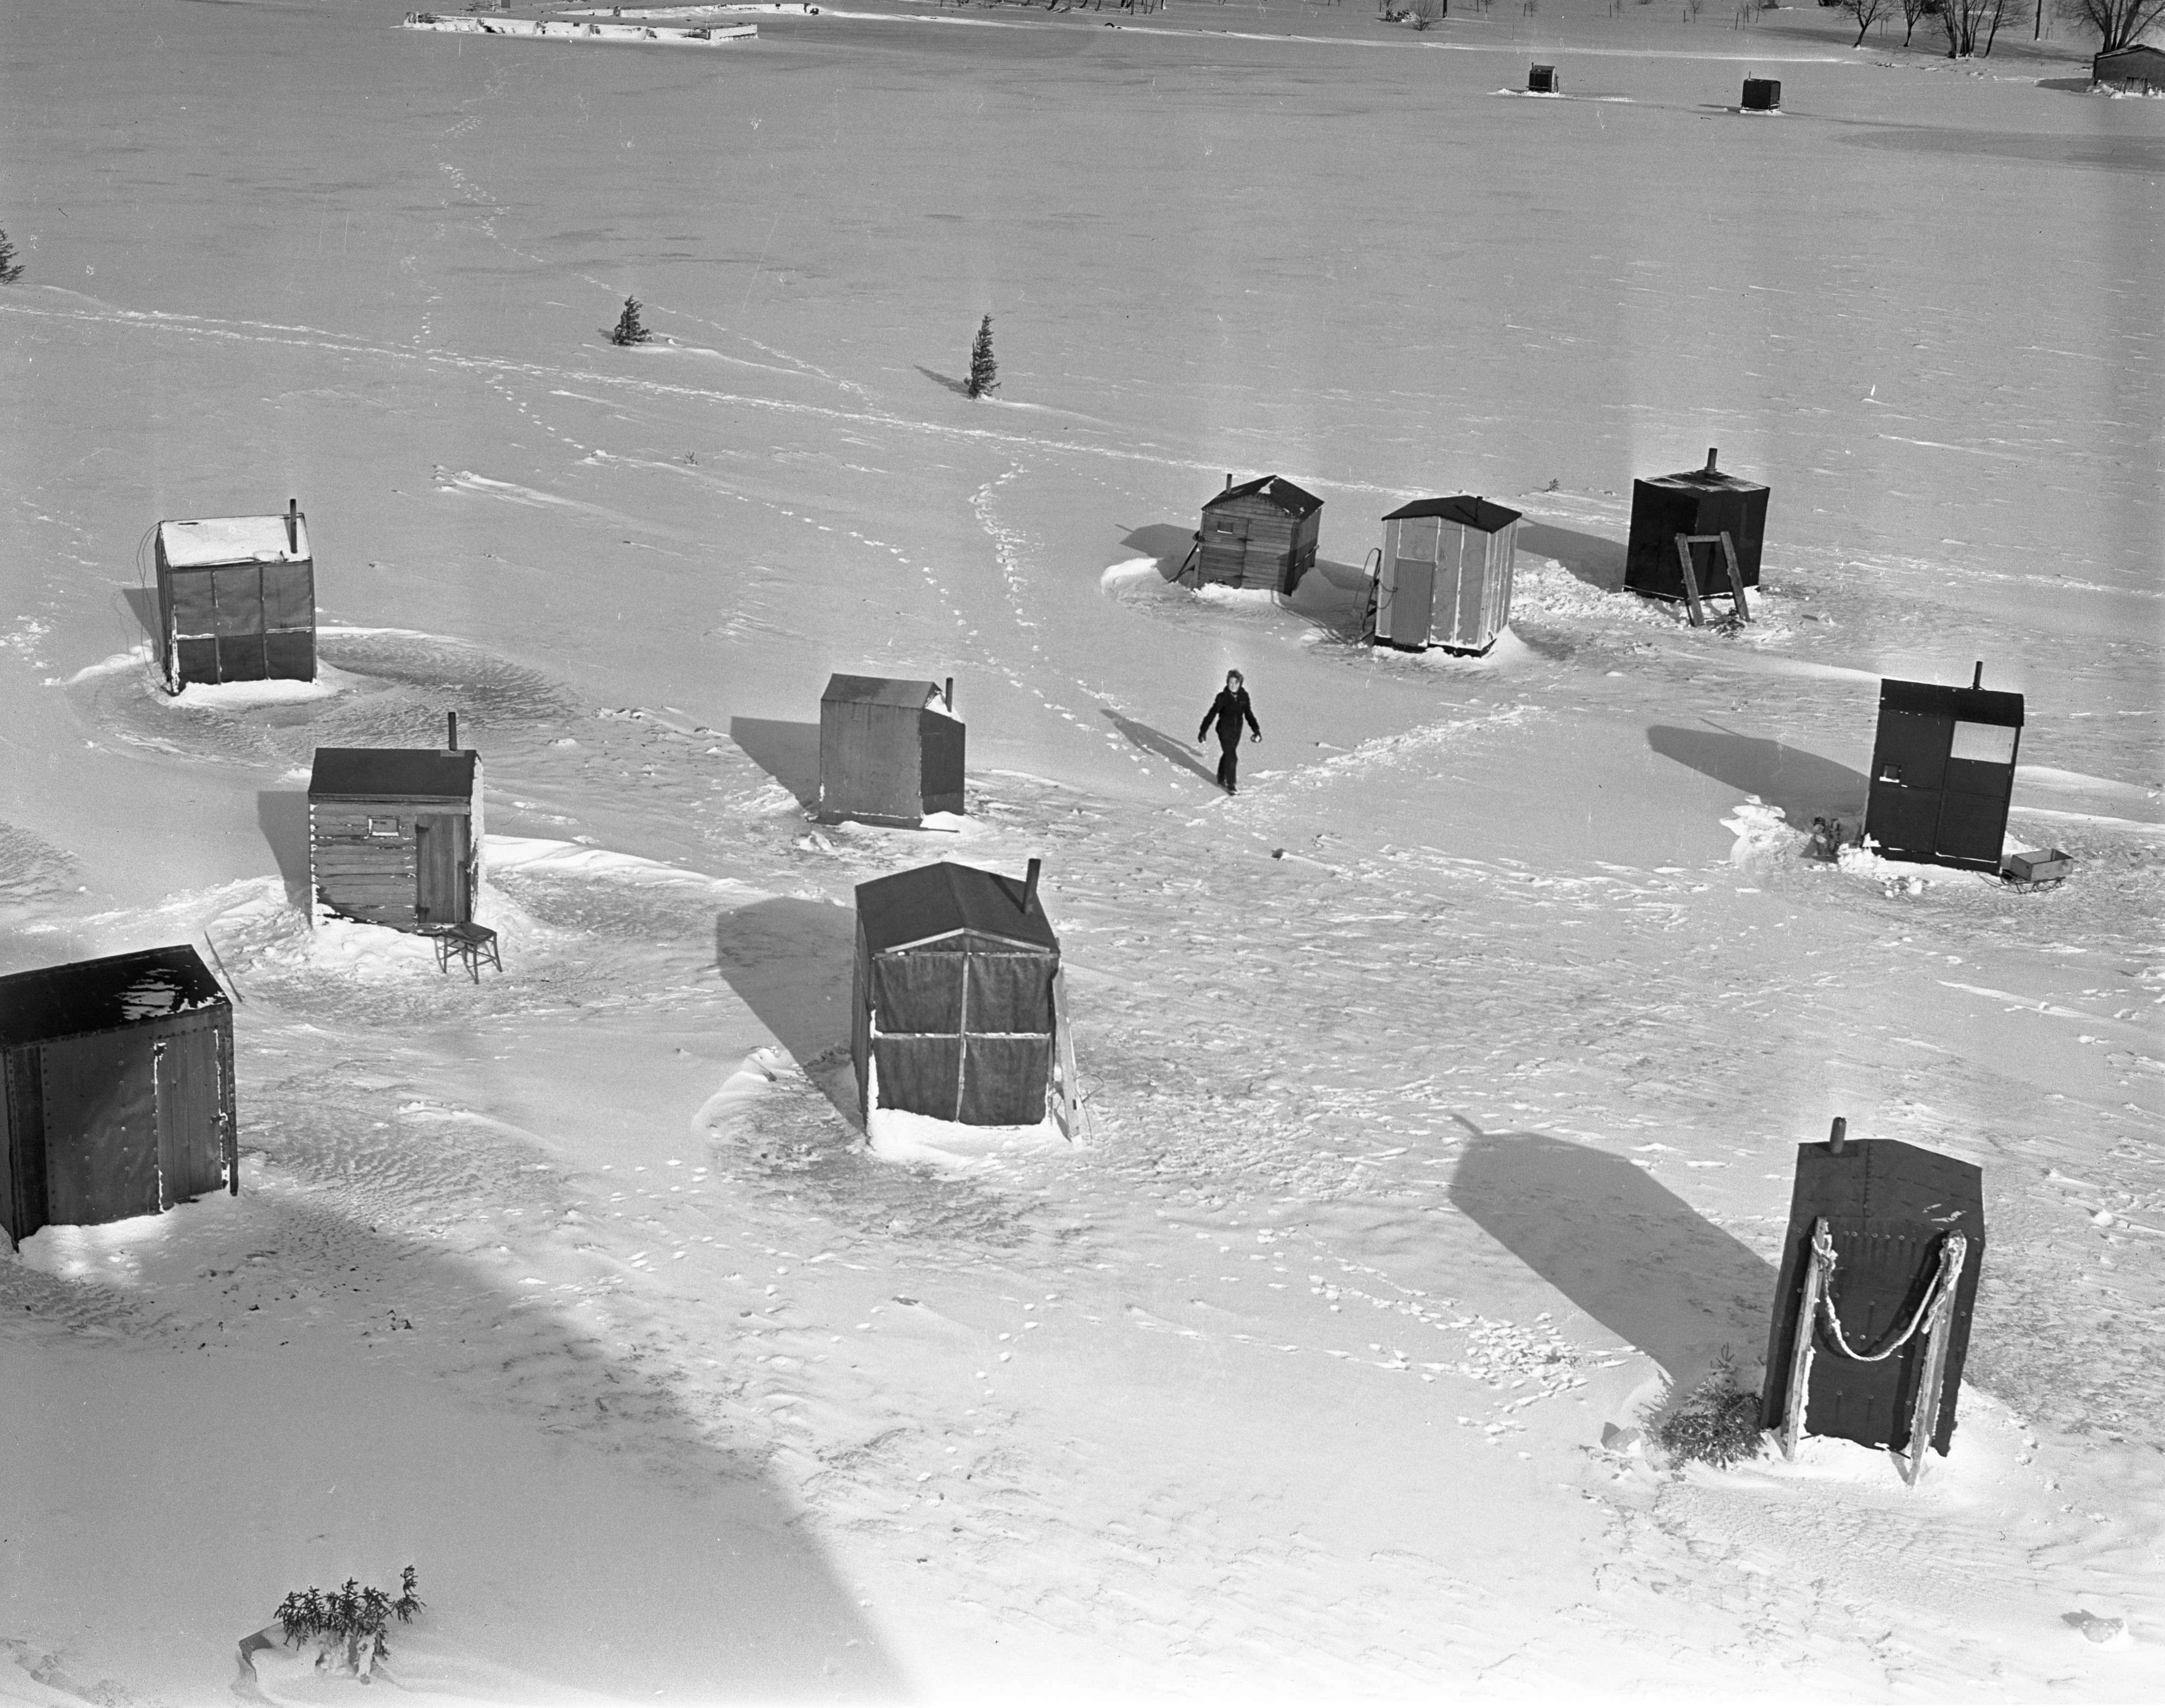 'Smeltania' Ice Shanty Outpost On Lake Charlevoix Seen From Above, January 1940 image